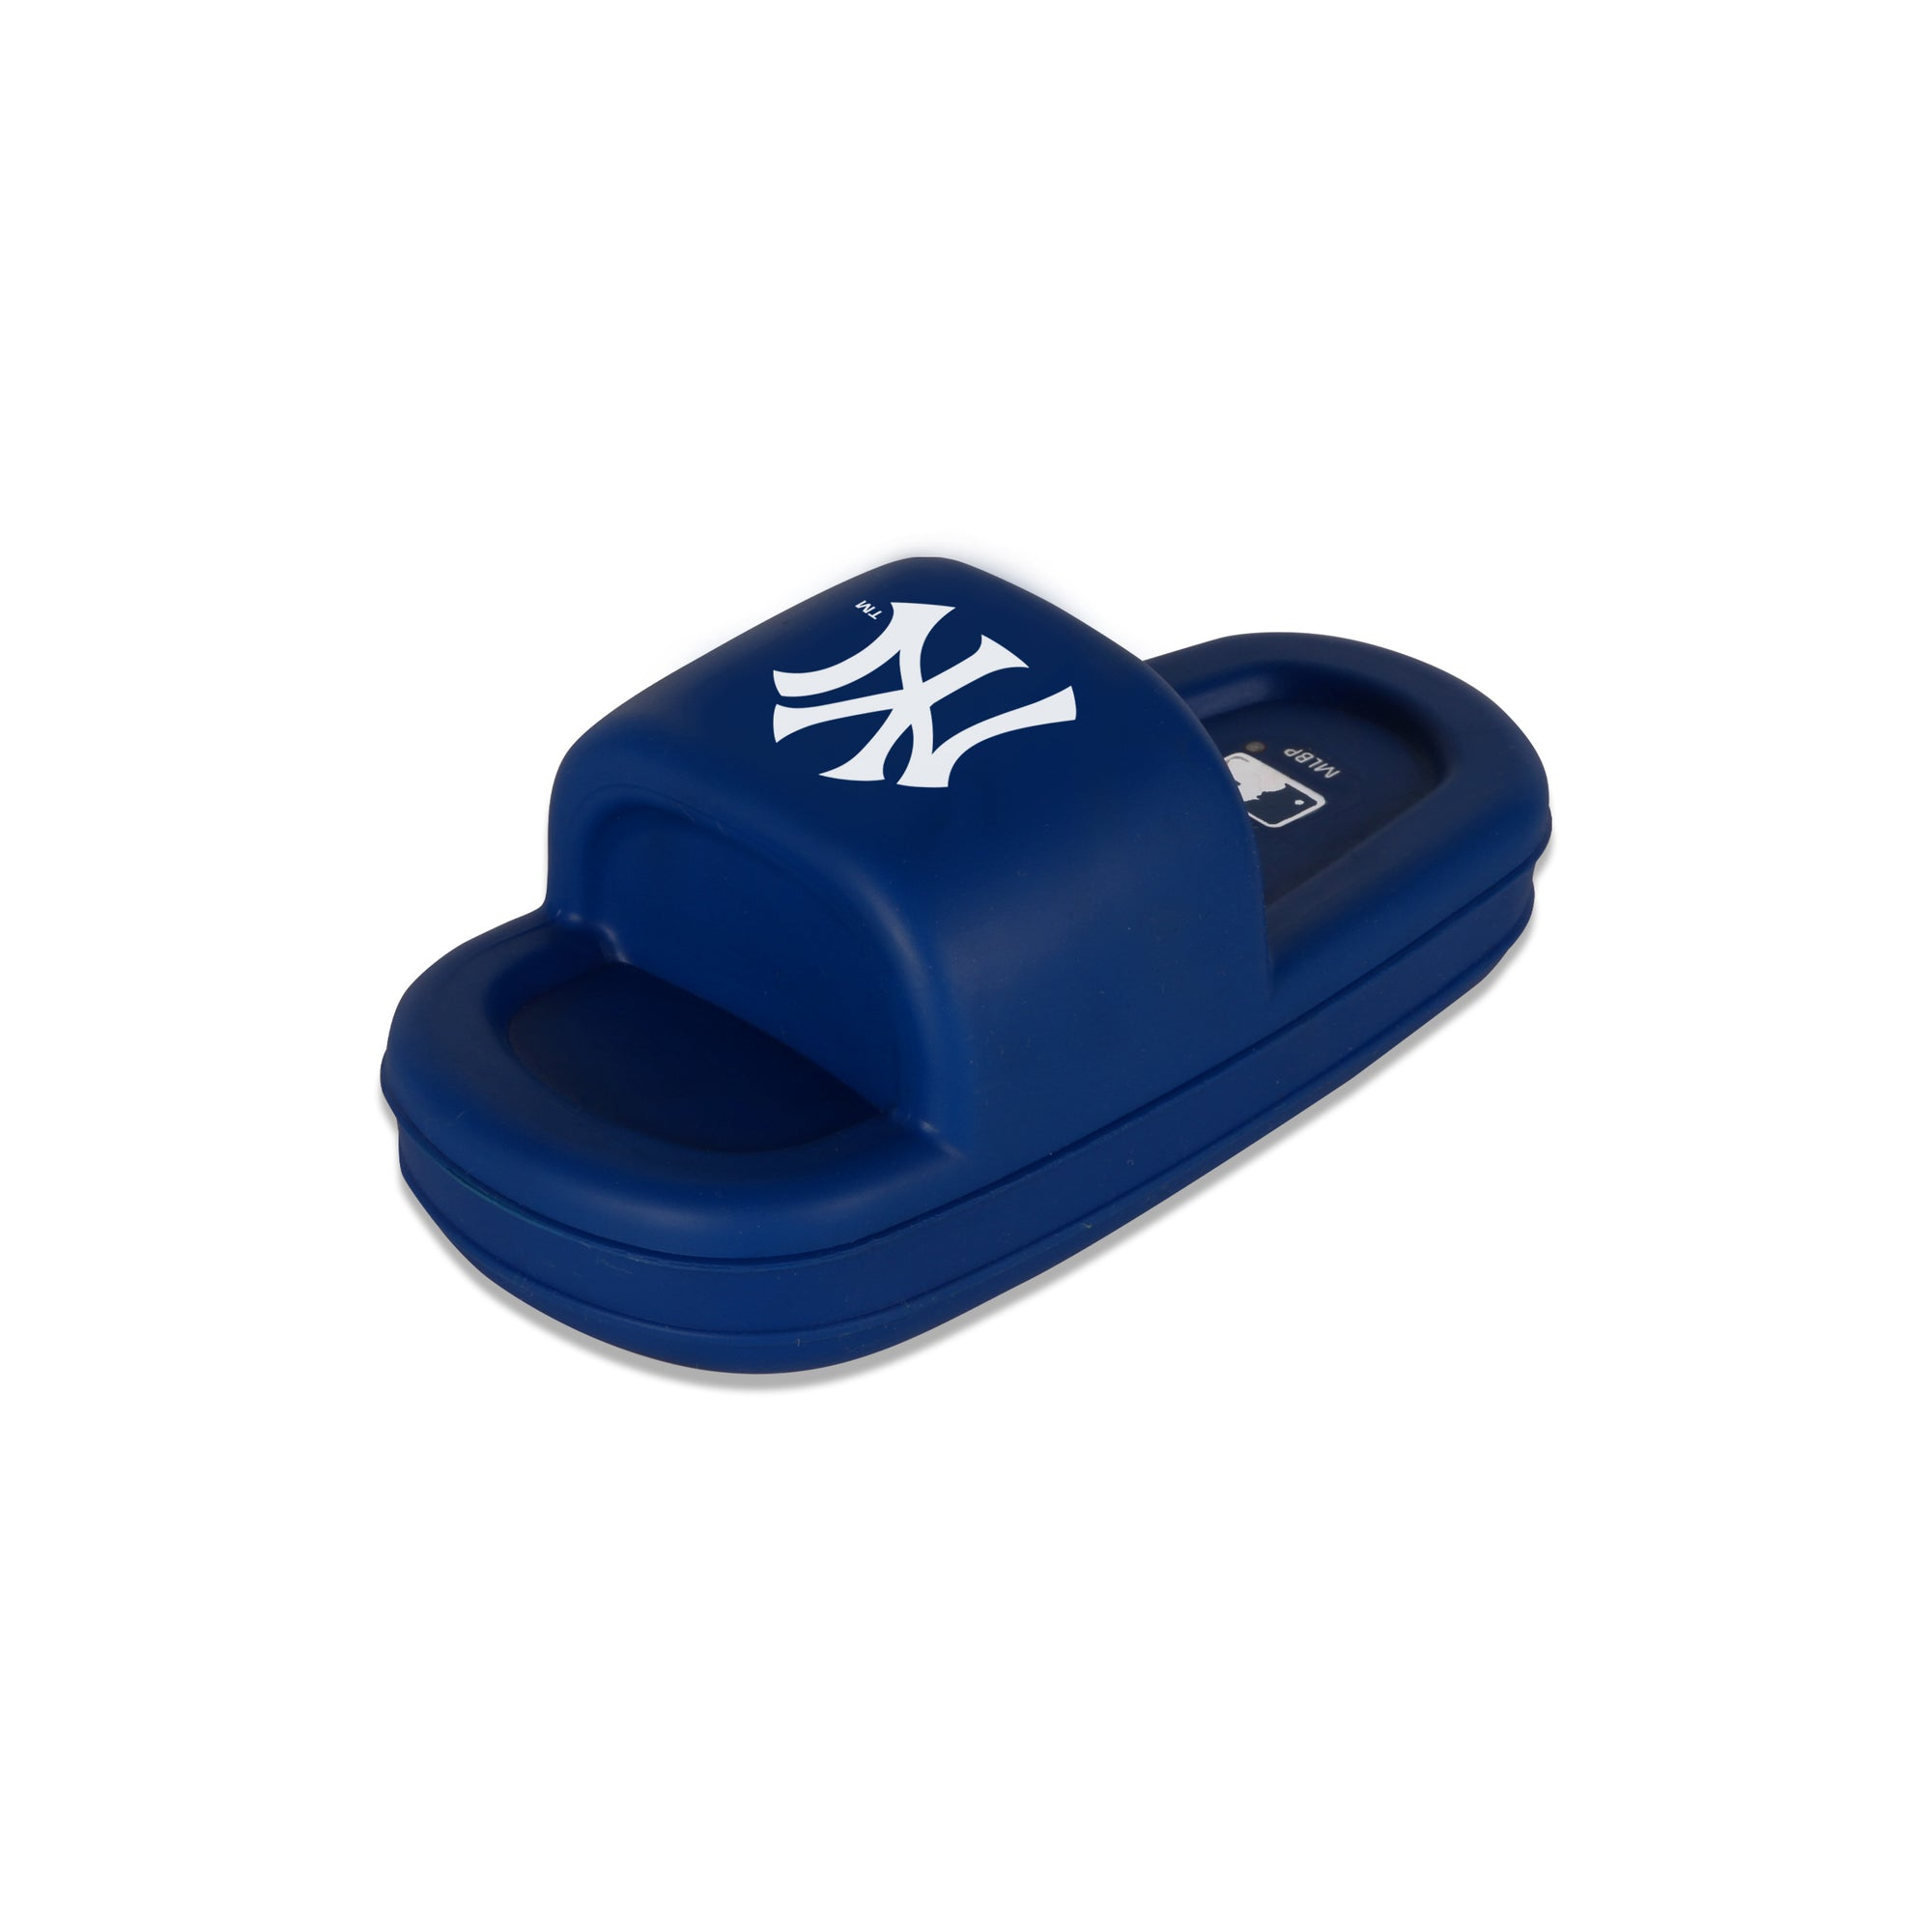 Nap Cap New York Yankees Mutt Slide Dog Chew Toy